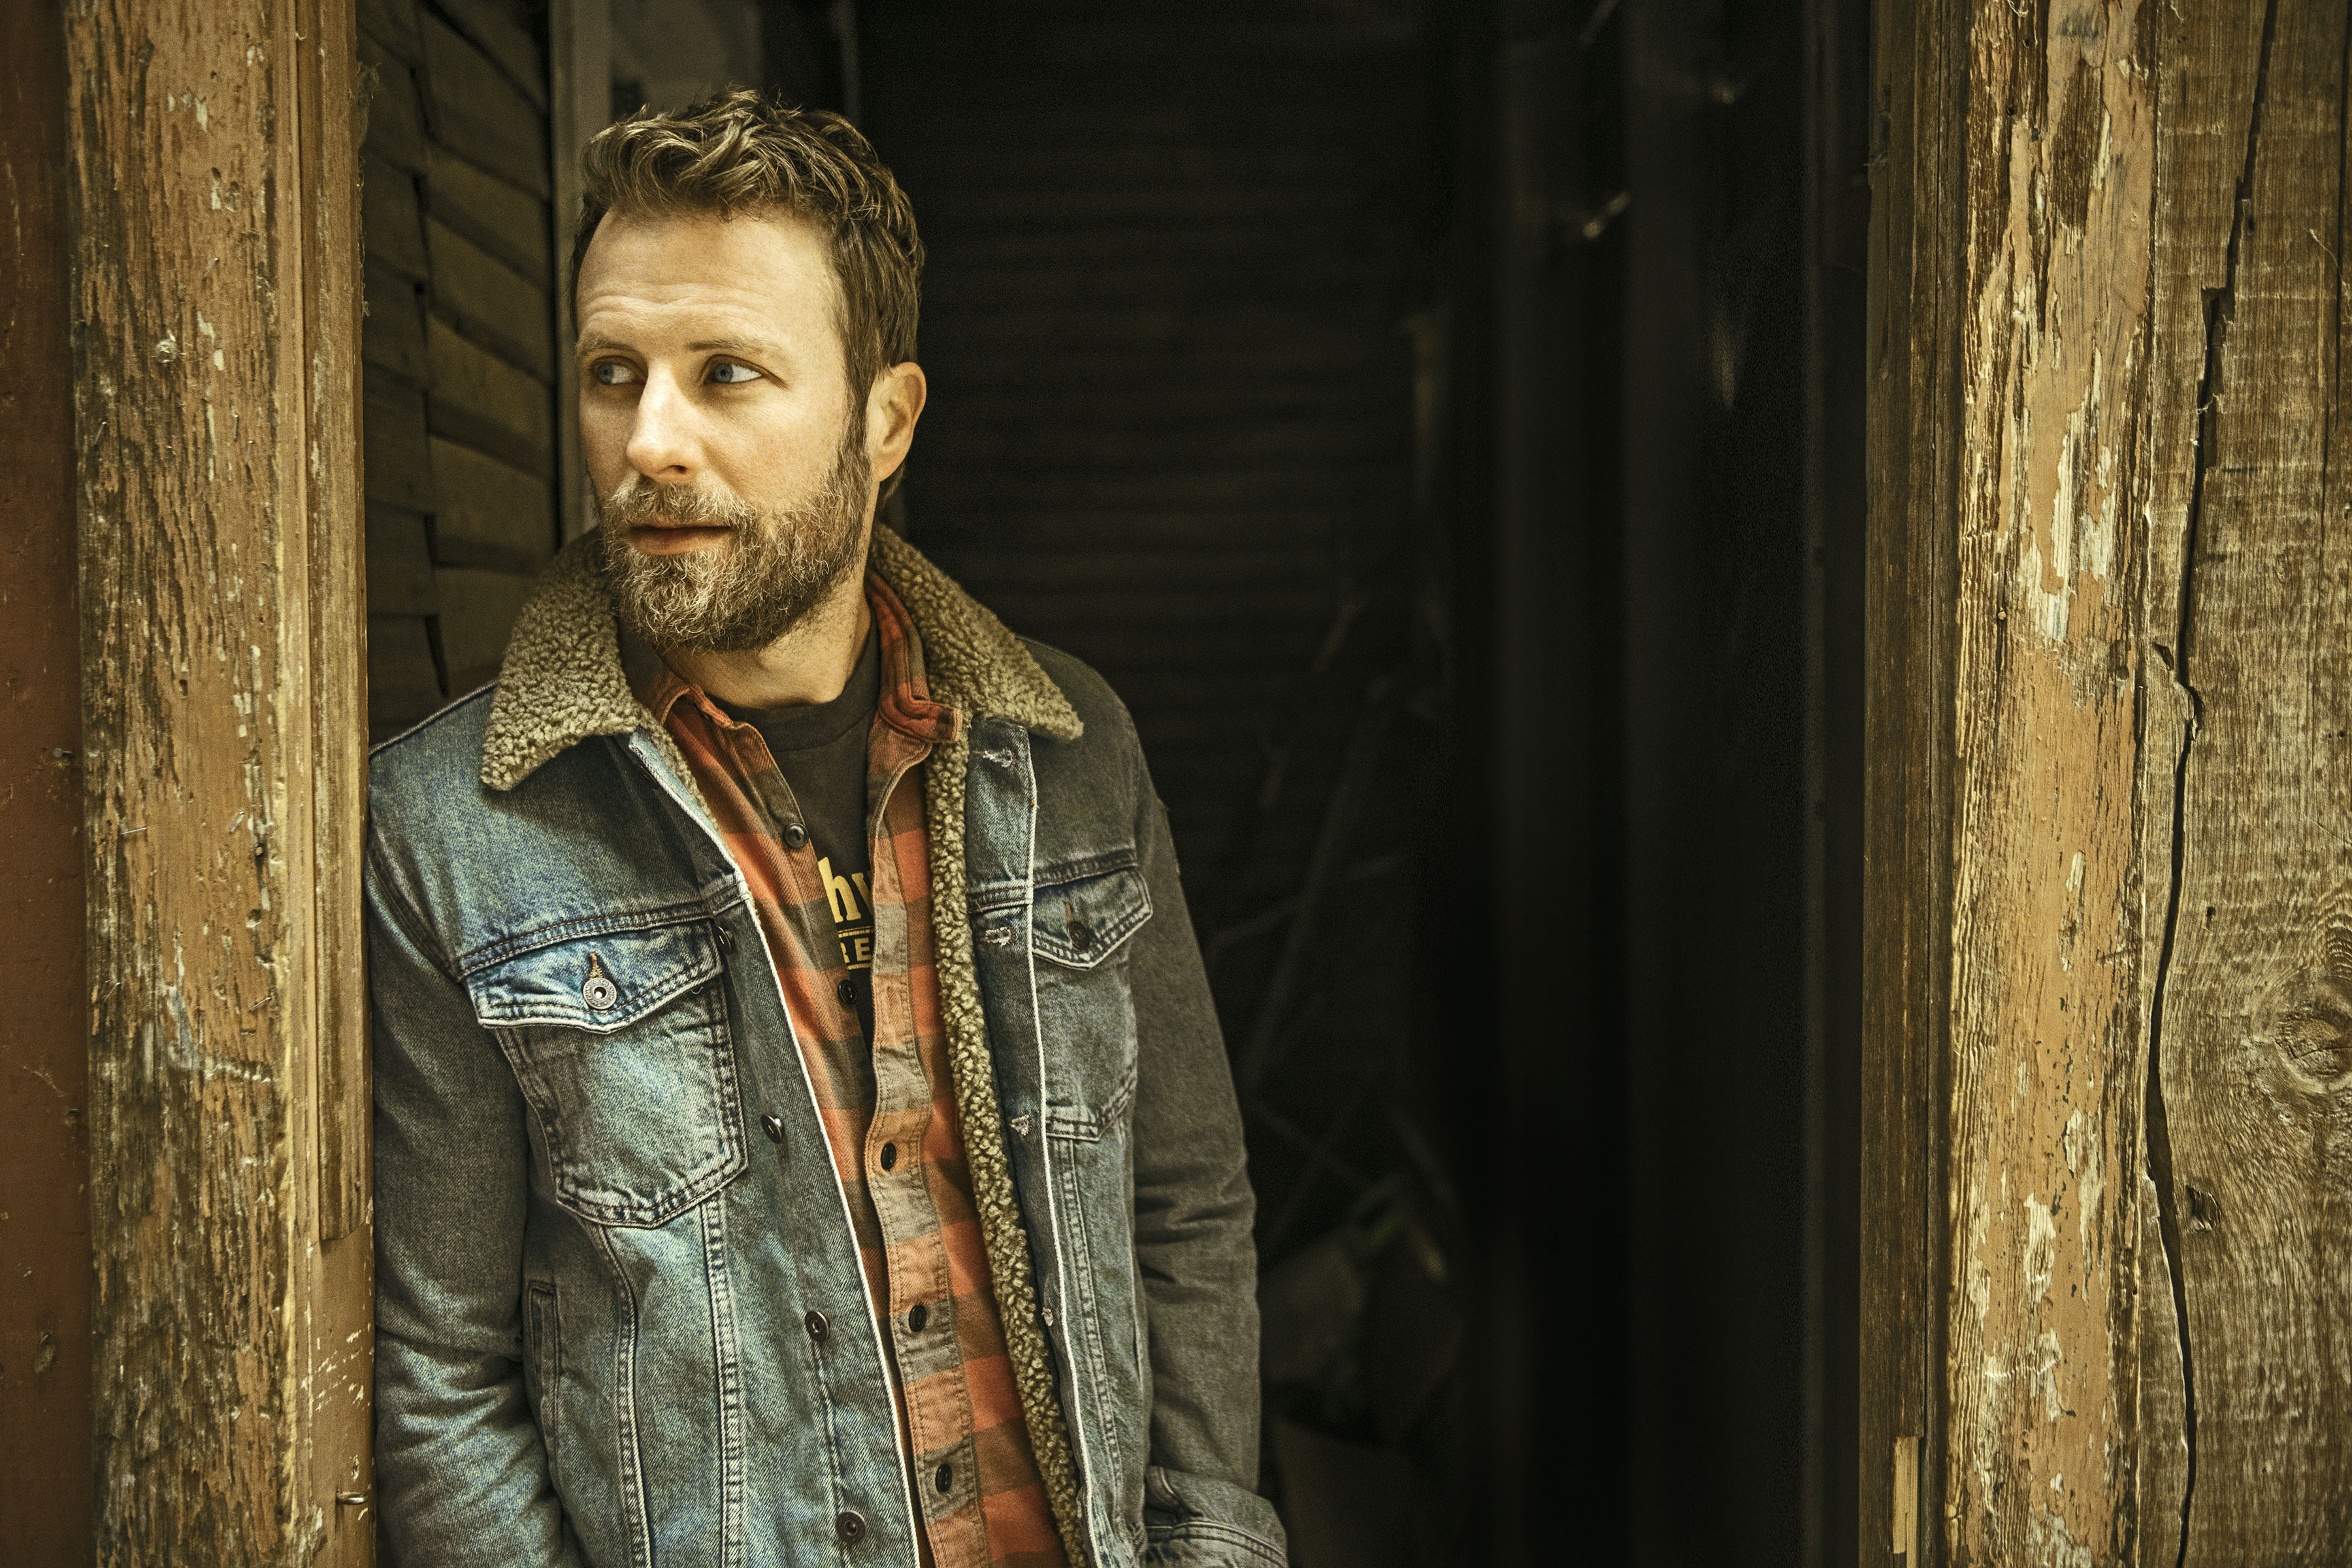 DIERKS BENTLEY GETS SEAL OF APPROVAL FROM THE GOLDEN BEAR.